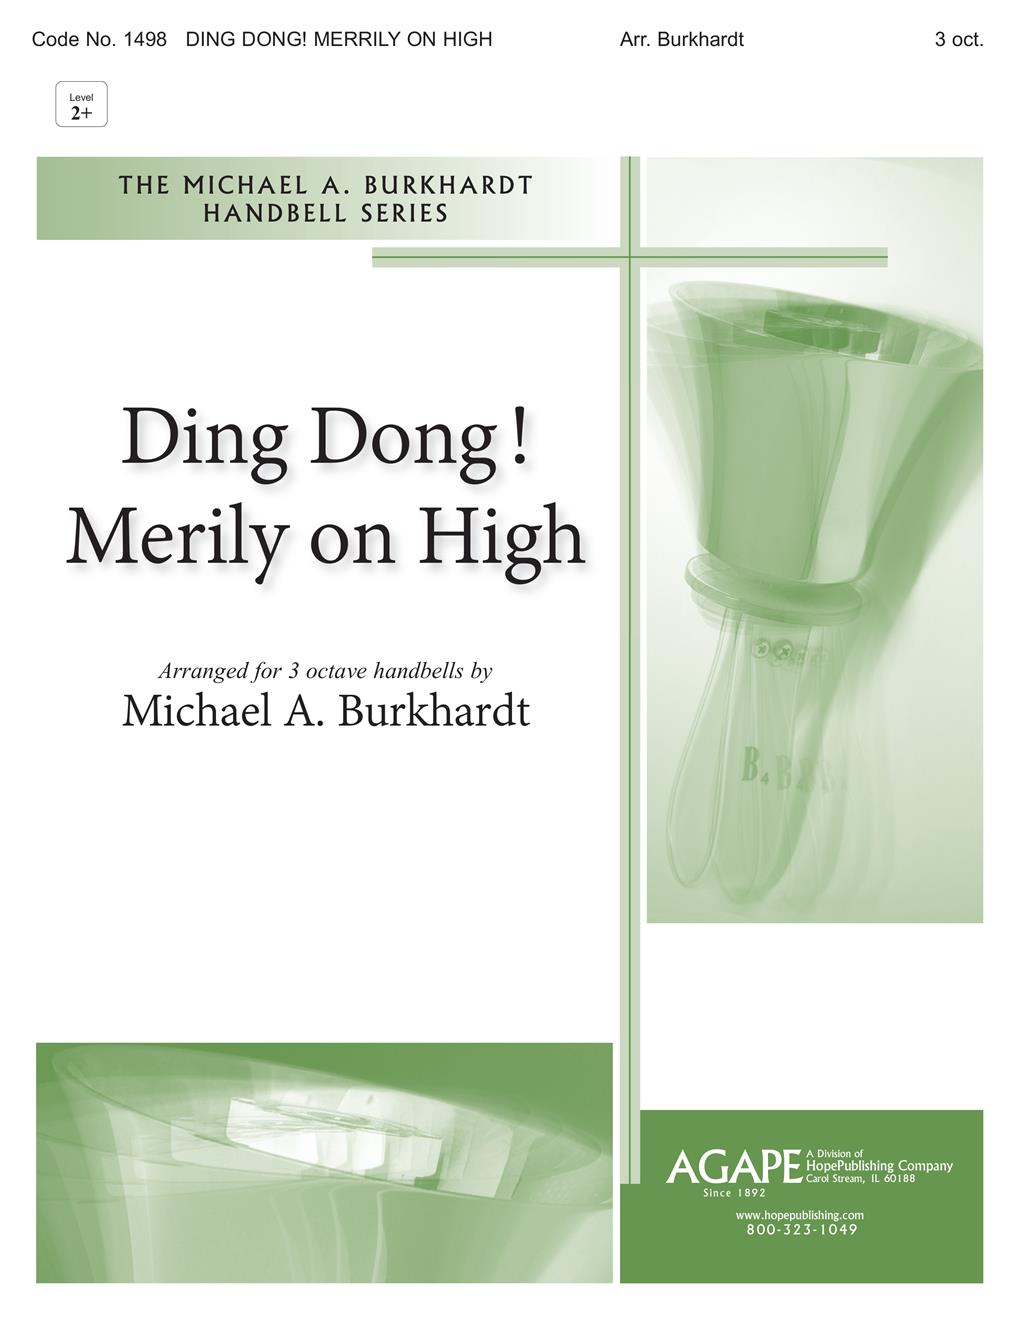 Ding Dong Merrily on High - 3 Octave Cover Image